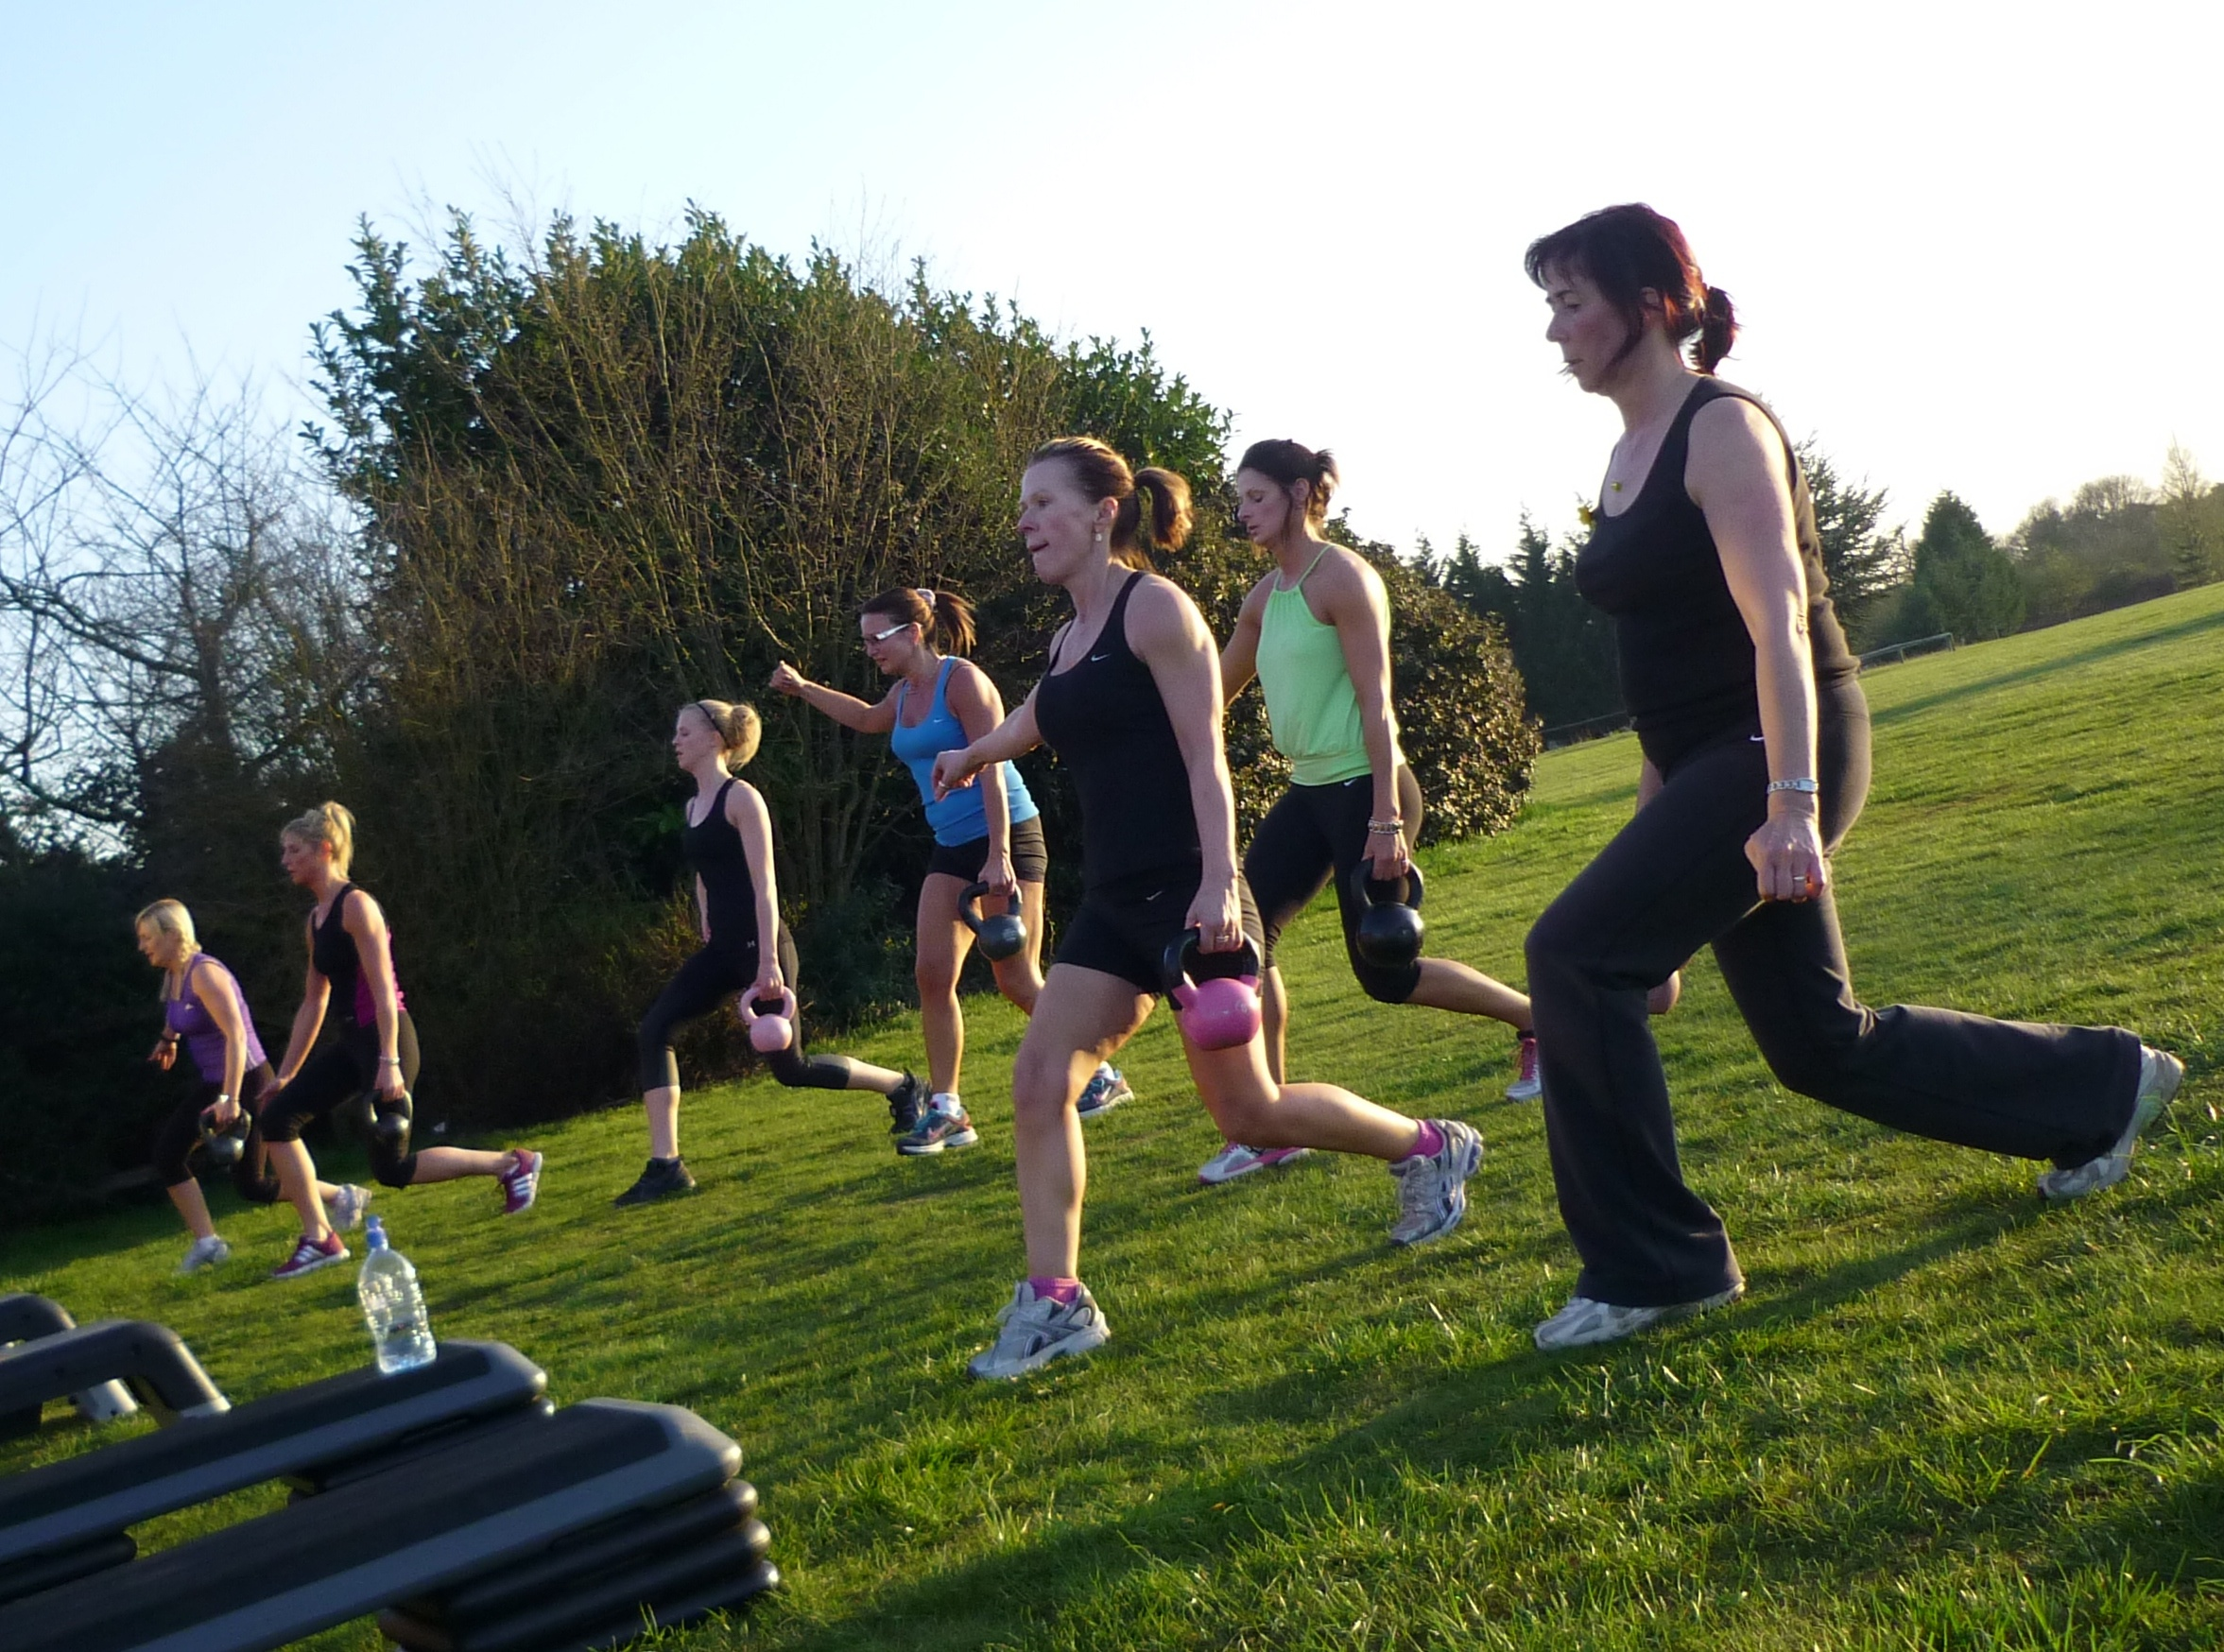 Outdoor small group training